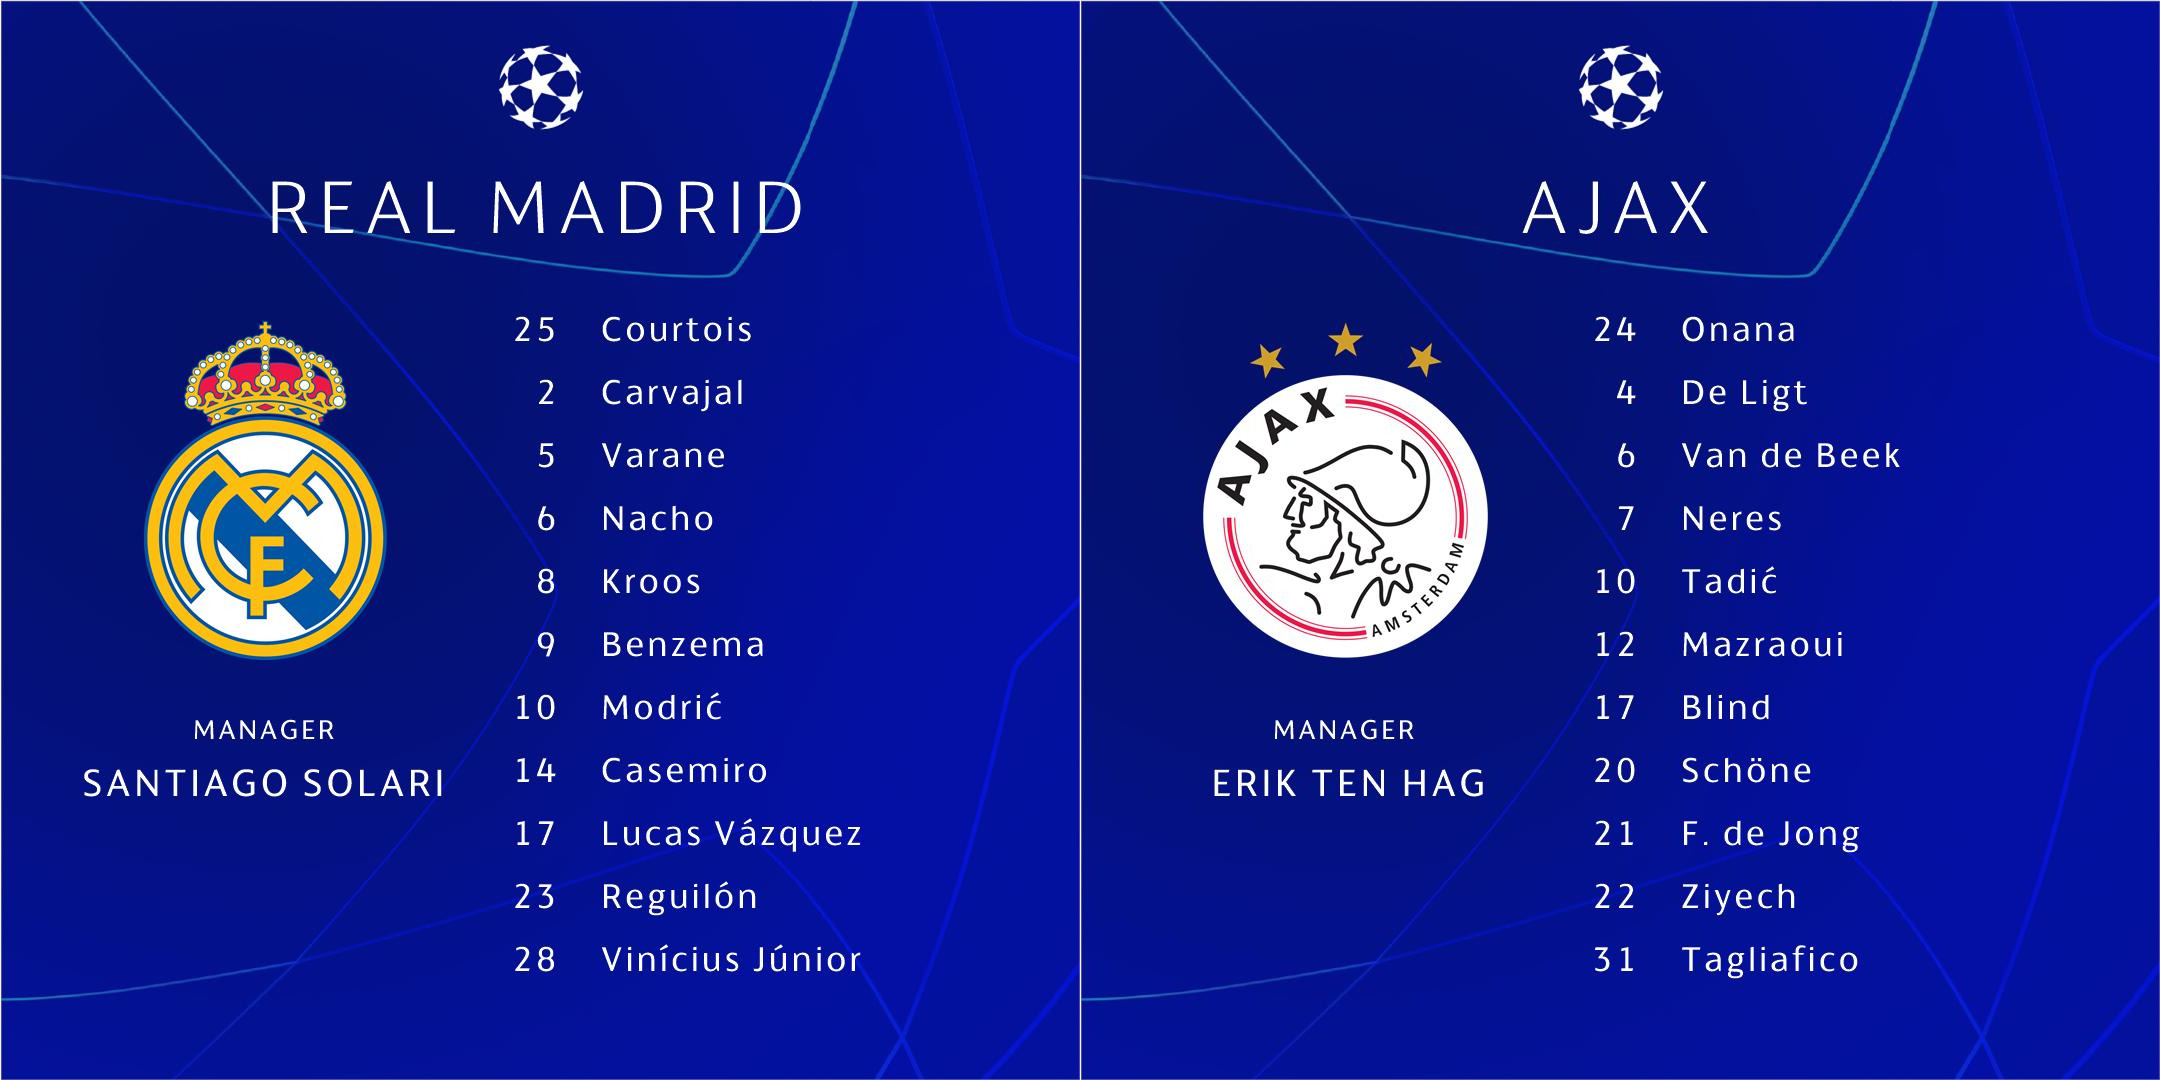 imgonline com ua twotoone nmrXwTUUQWL - Champions League: Real Madrid vs Ajax  – Official Starting Line-up